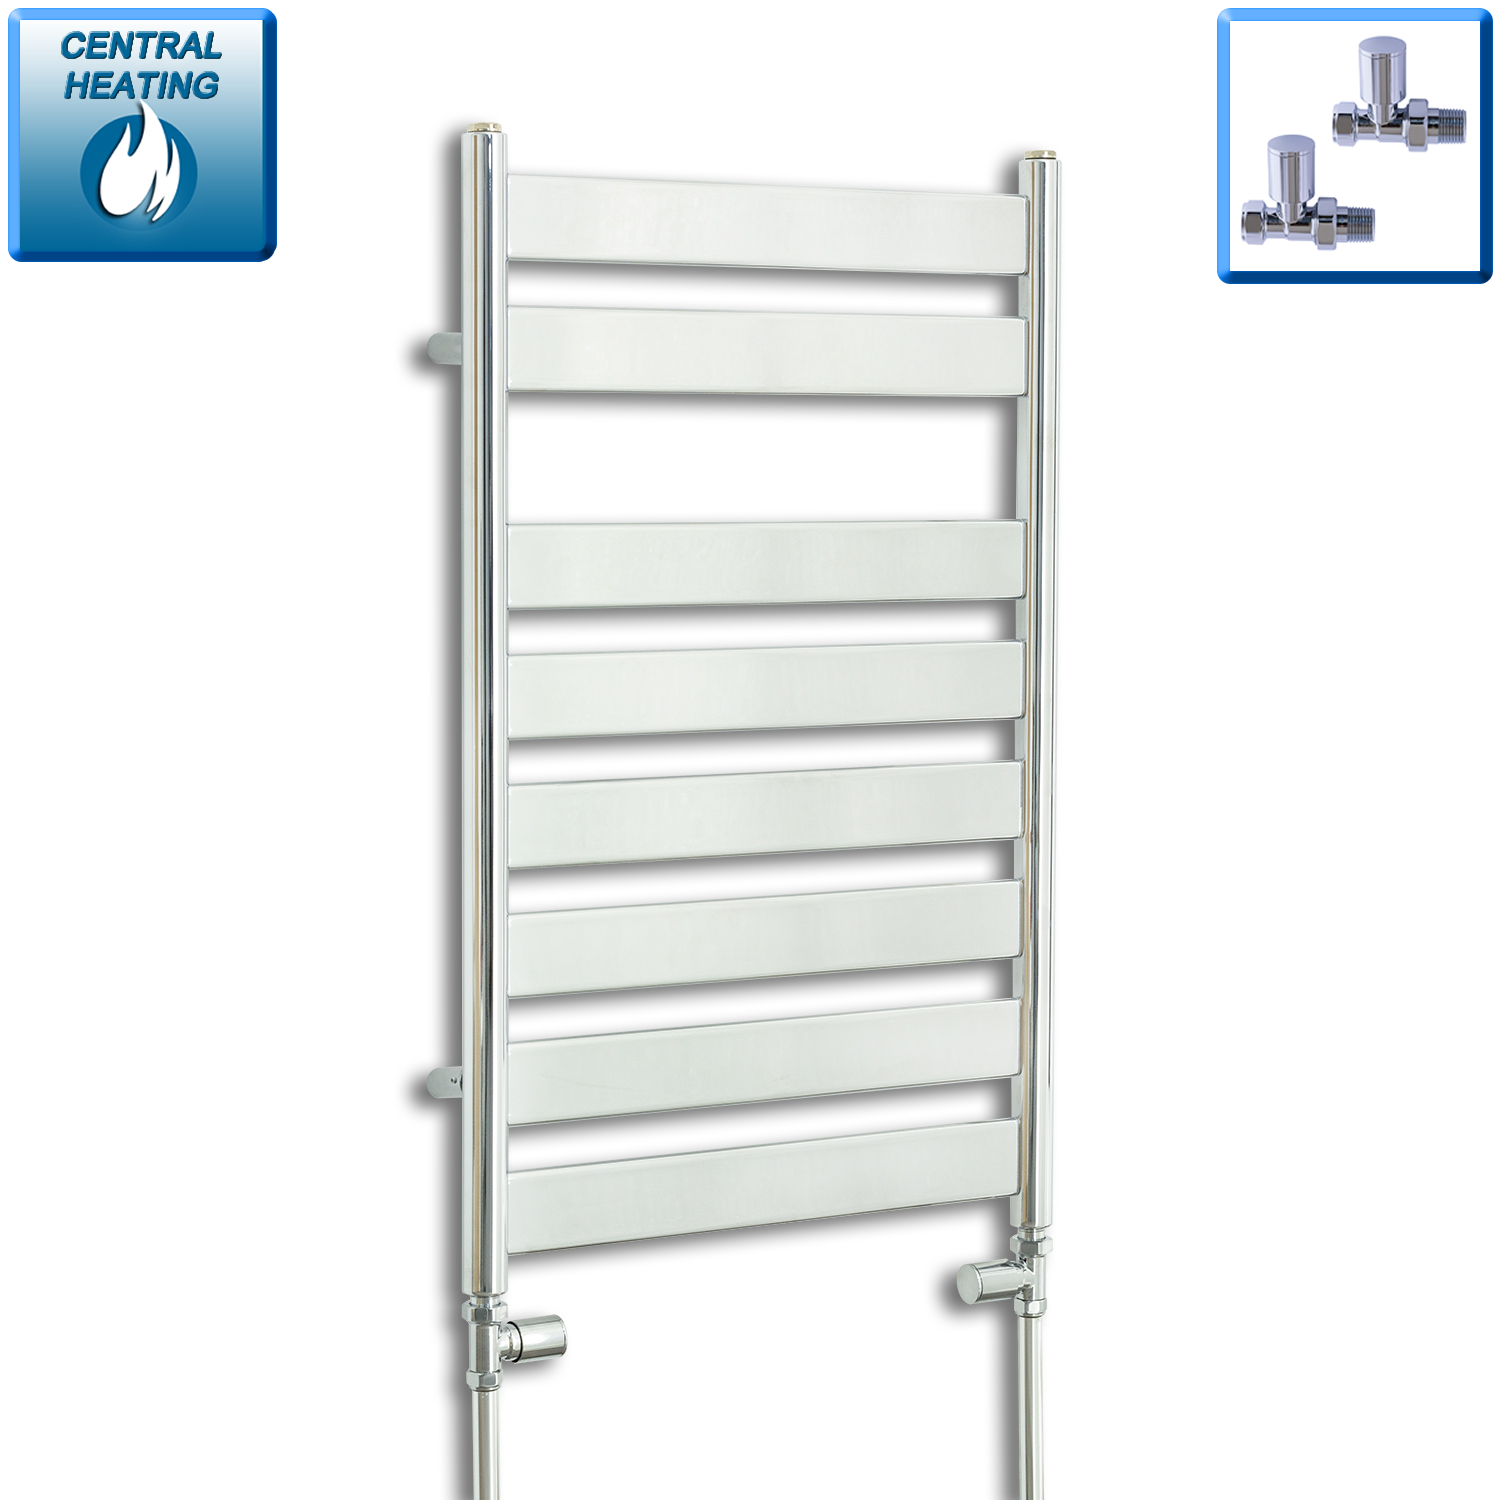 500mm Wide 800mm High Chrome Towel Rail Radiator With Straight Valve